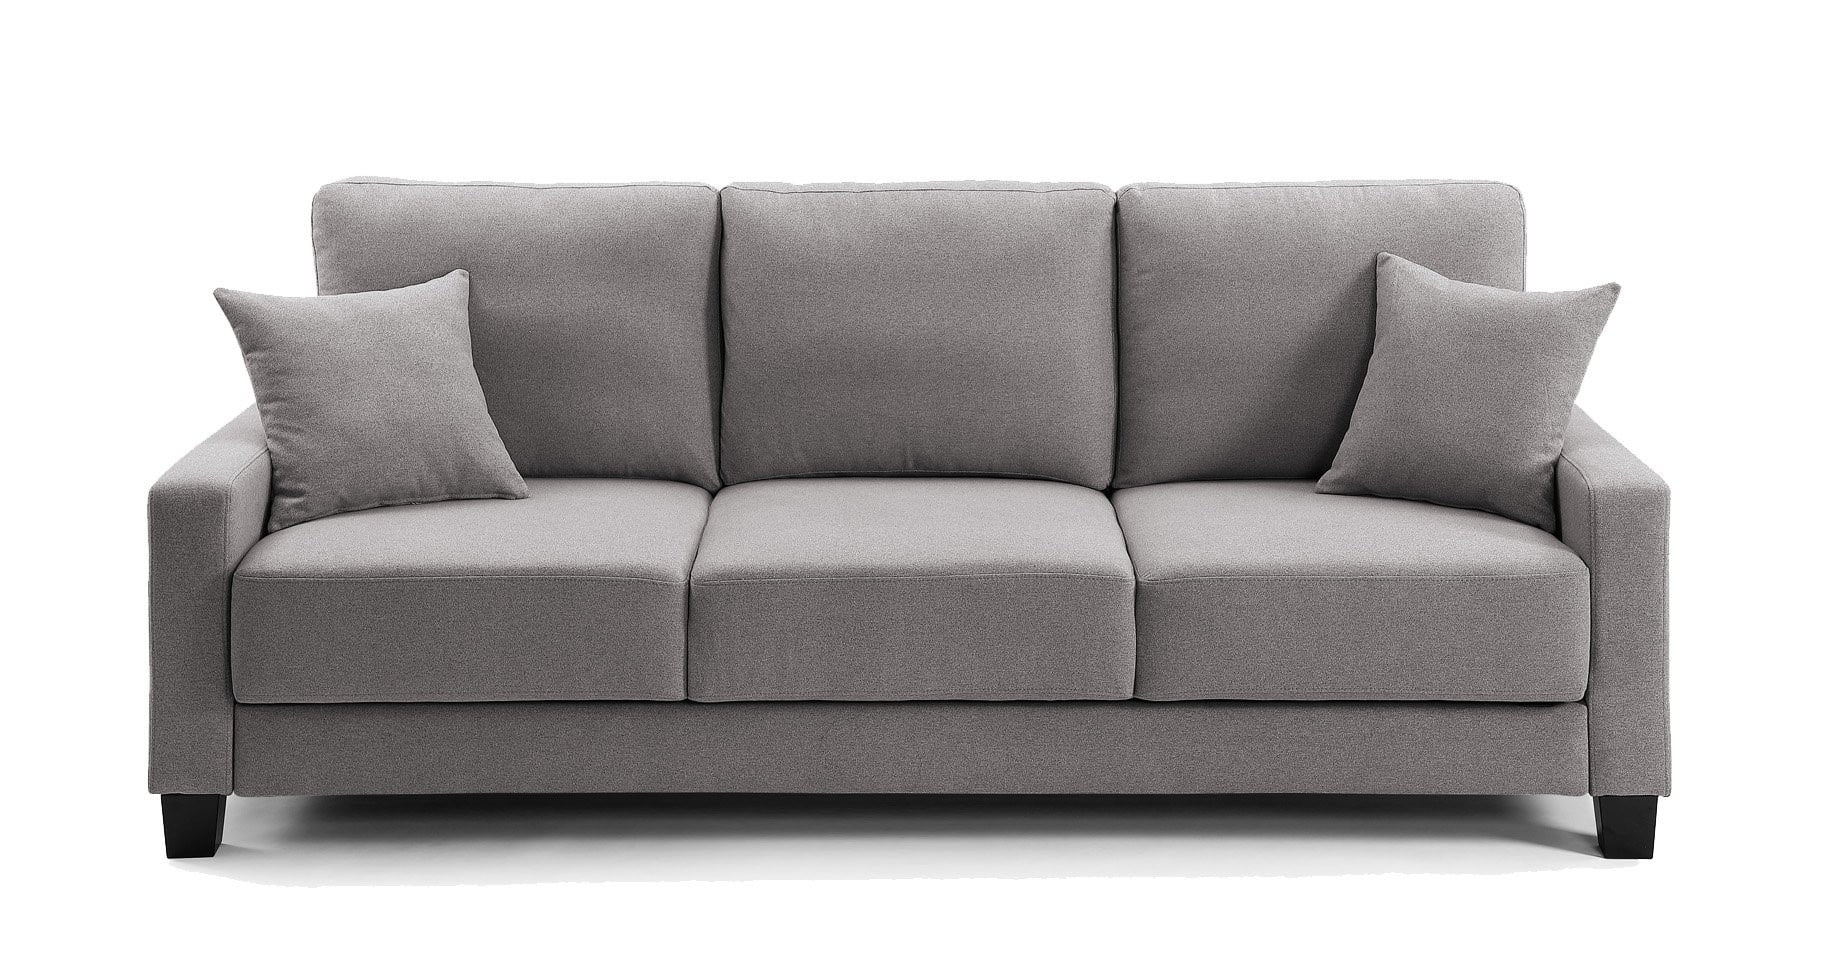 Barletta Queen Size Sealy Sofa Sleeper Convertible - sofacreations